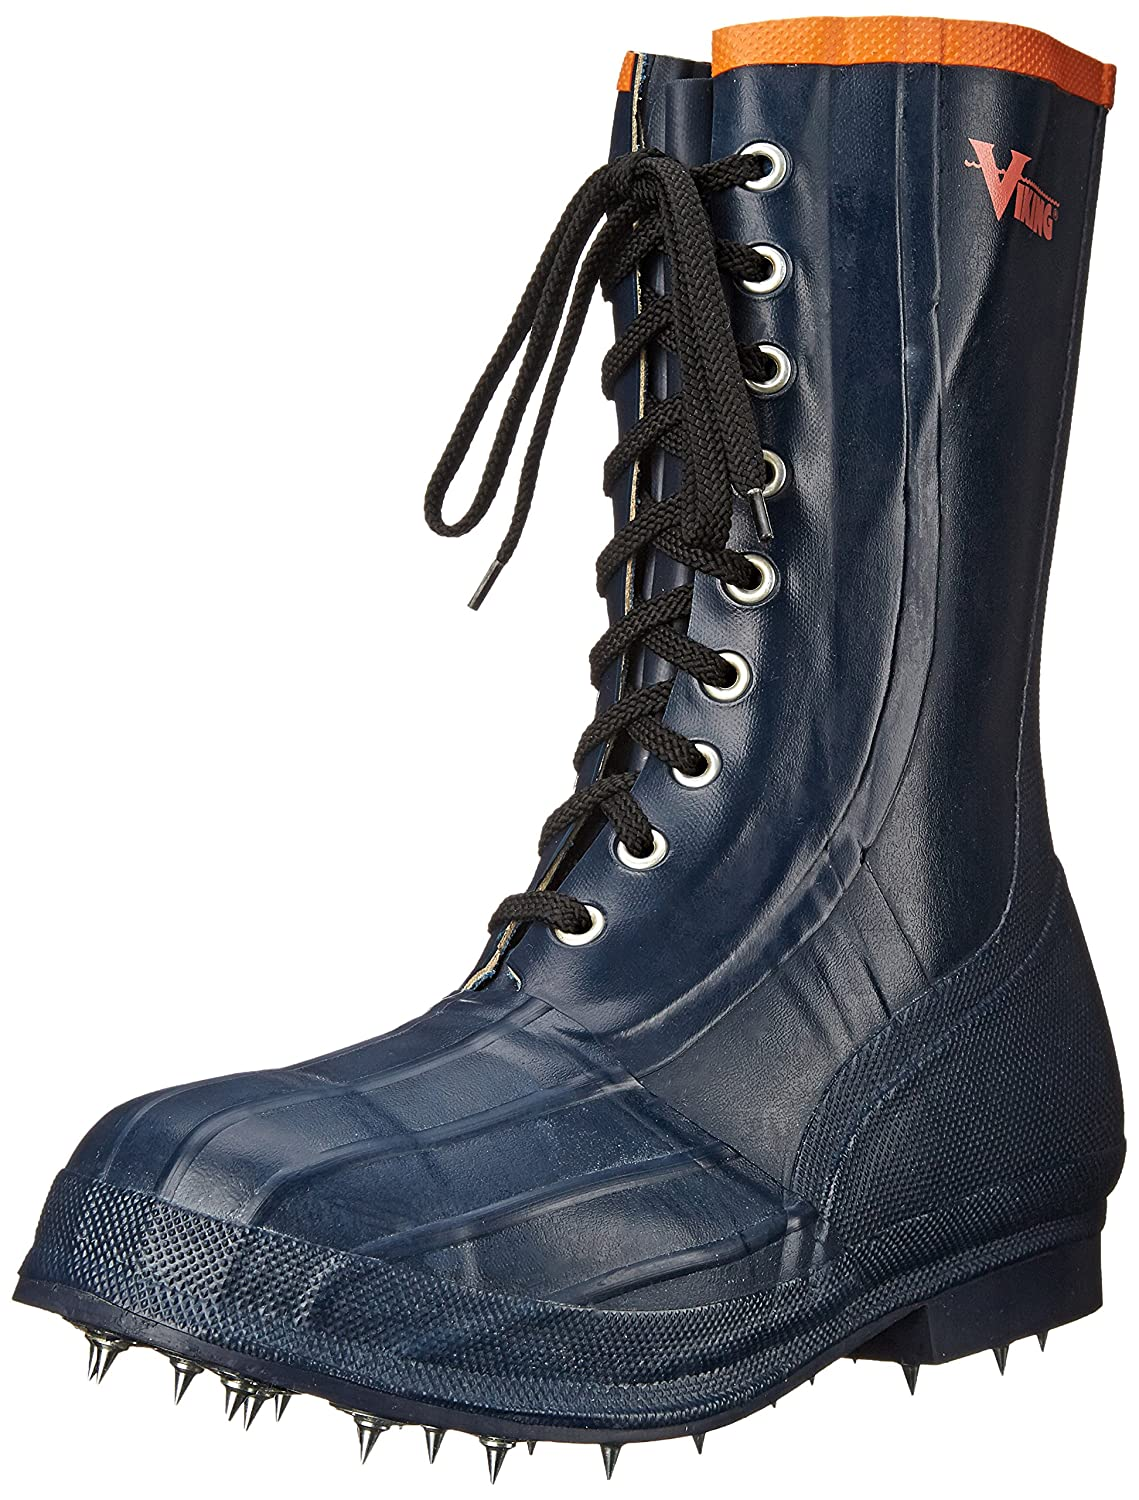 Viking Footwear Spiked Forester Caulk Boot B00FG90S4S  ブラック/オレンジ 10 D(M) US